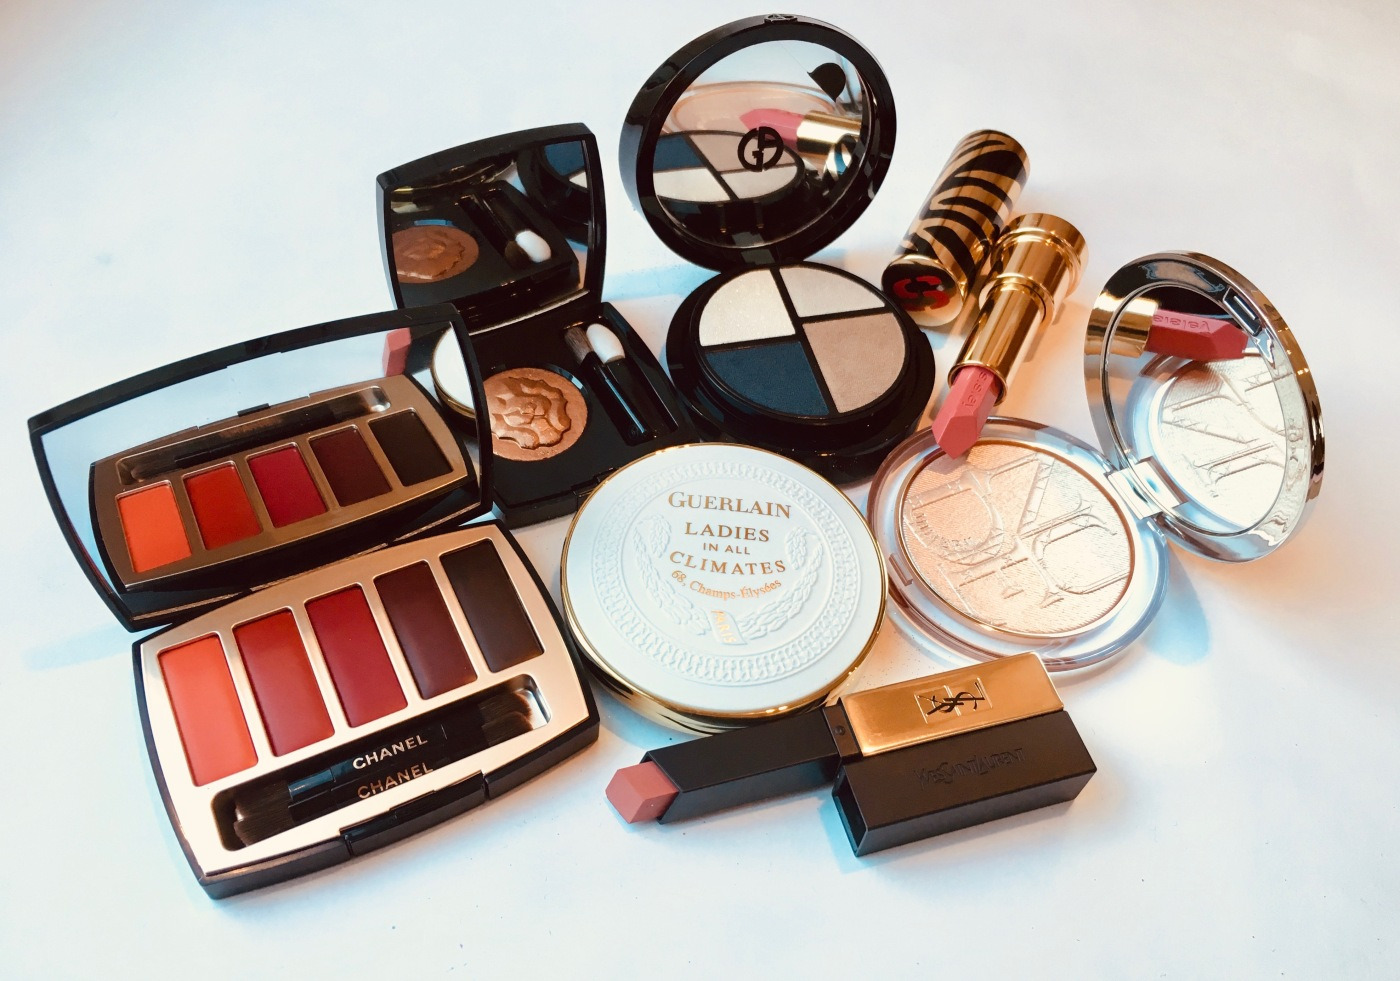 guerlain ladies in all climates chanel christmas yel sisley lipstick armani dior highlighter